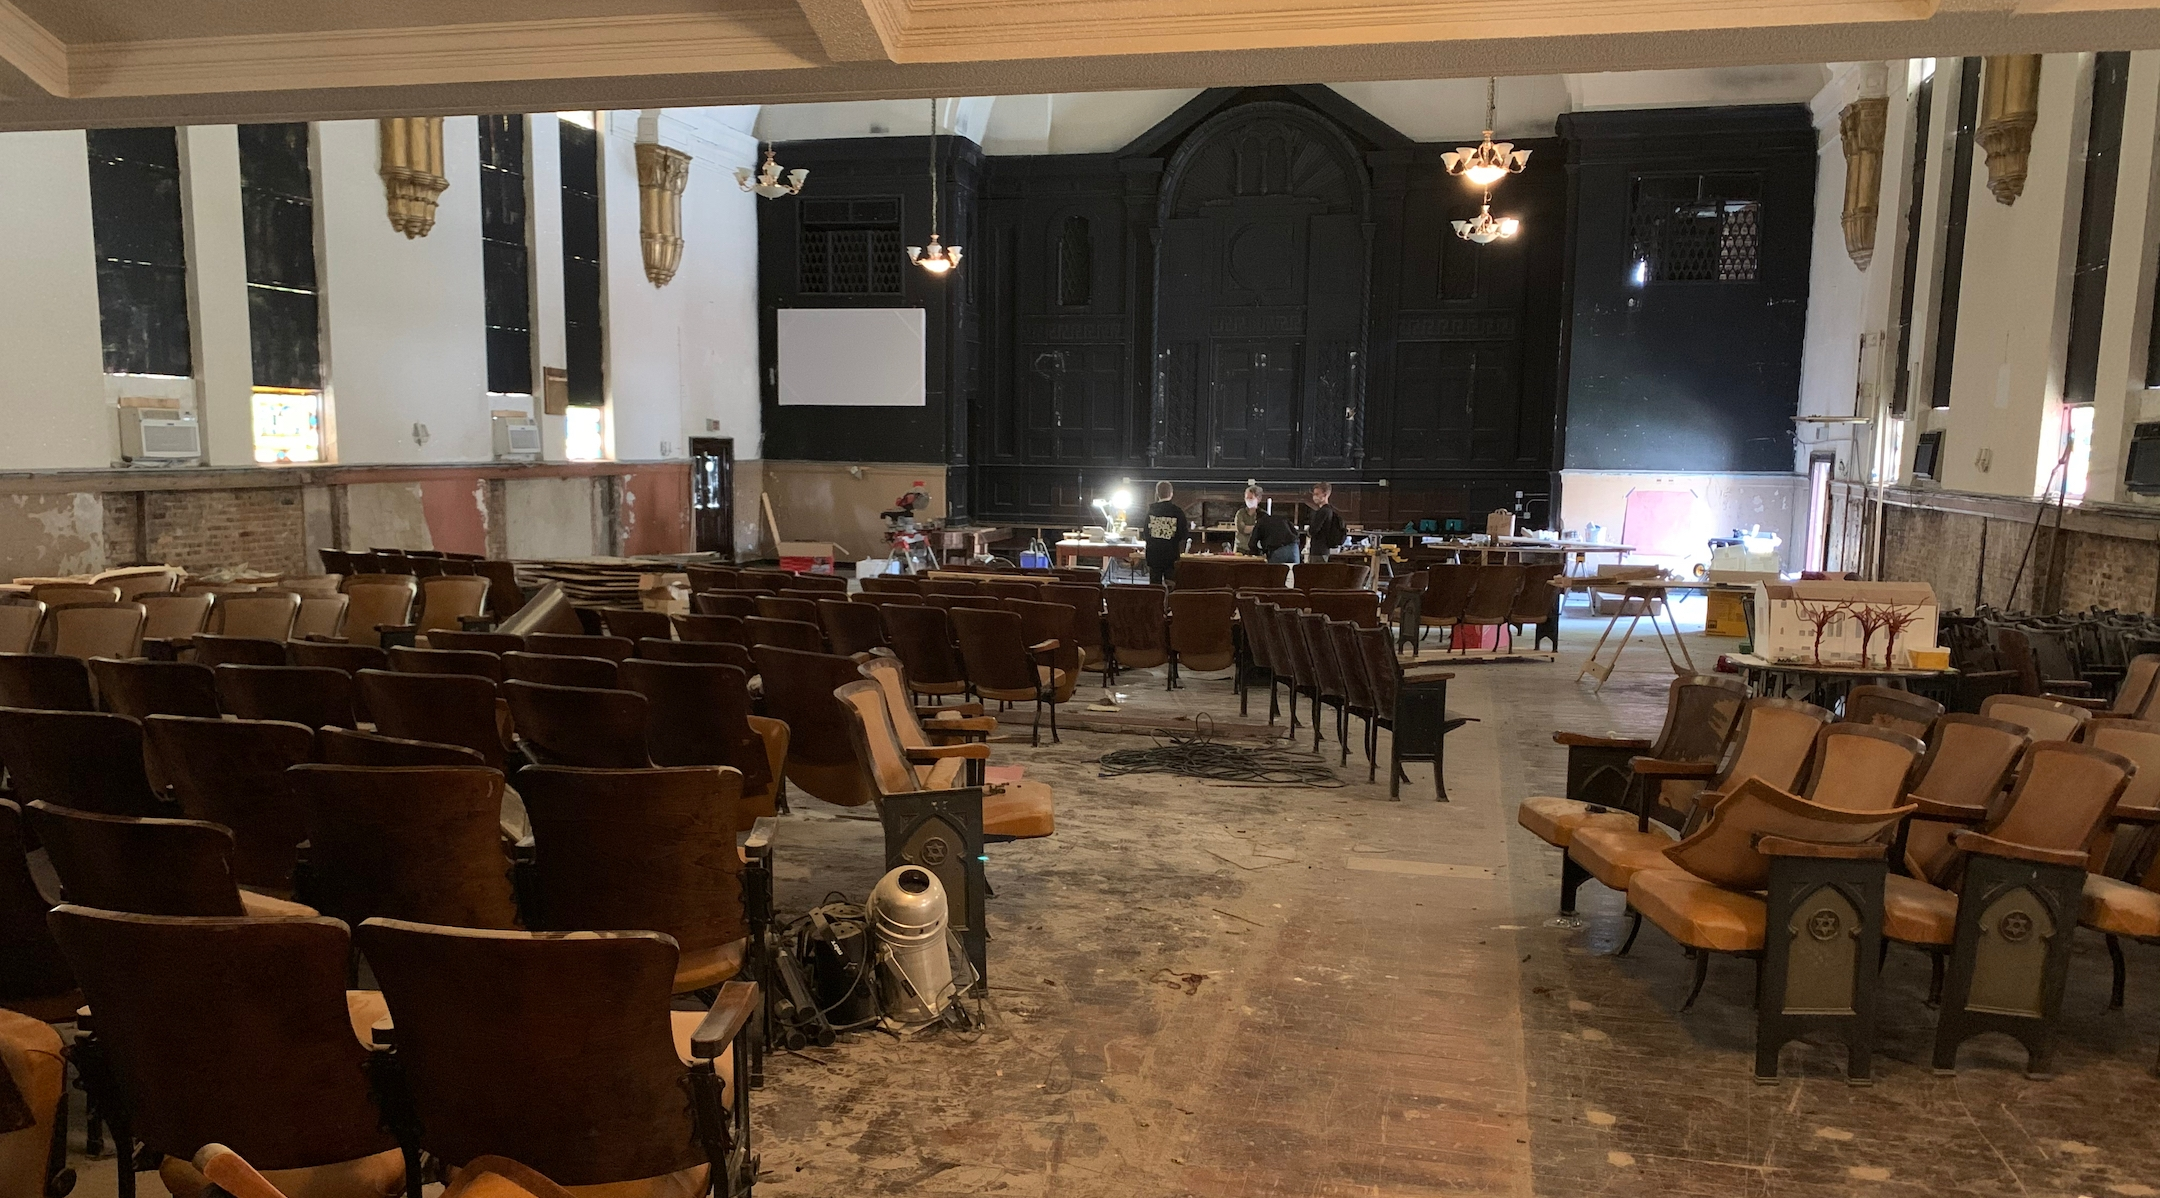 The former Congregation B'nai Bezalel in Chicago, under renovation